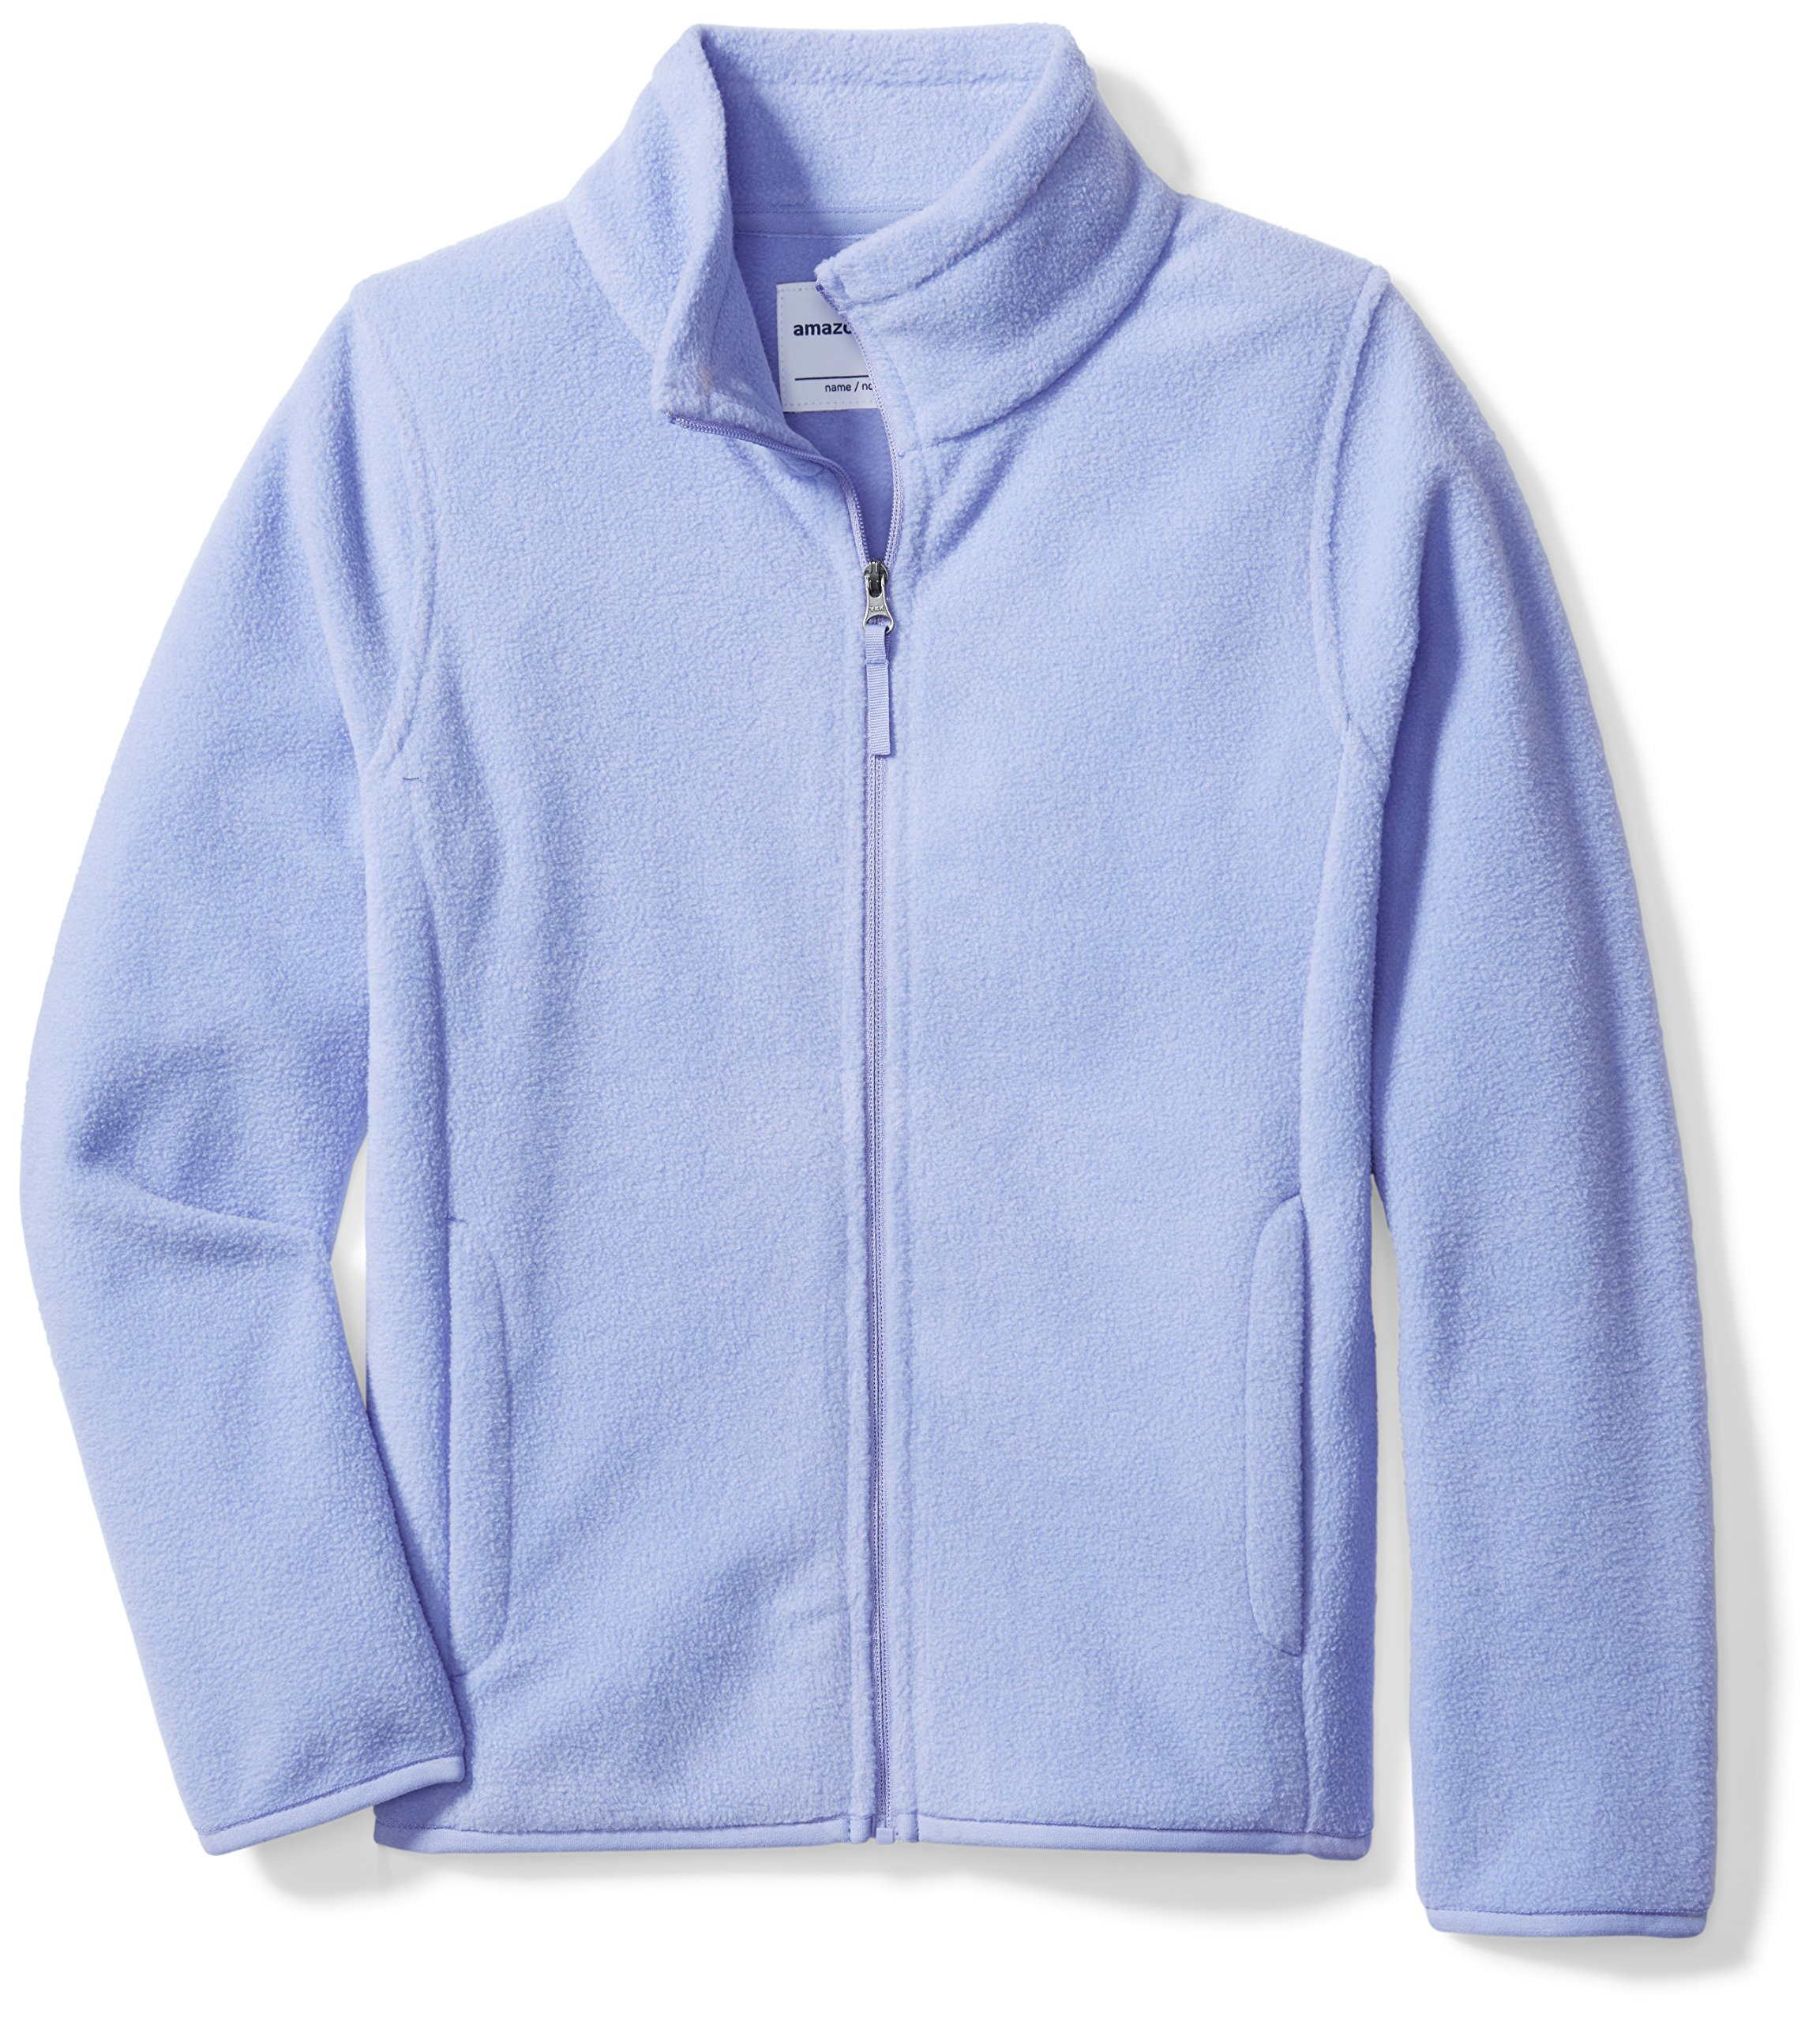 Amazon Essentials Girls' Full-Zip Polar Fleece Jacket, Periwinkle Purple, Small